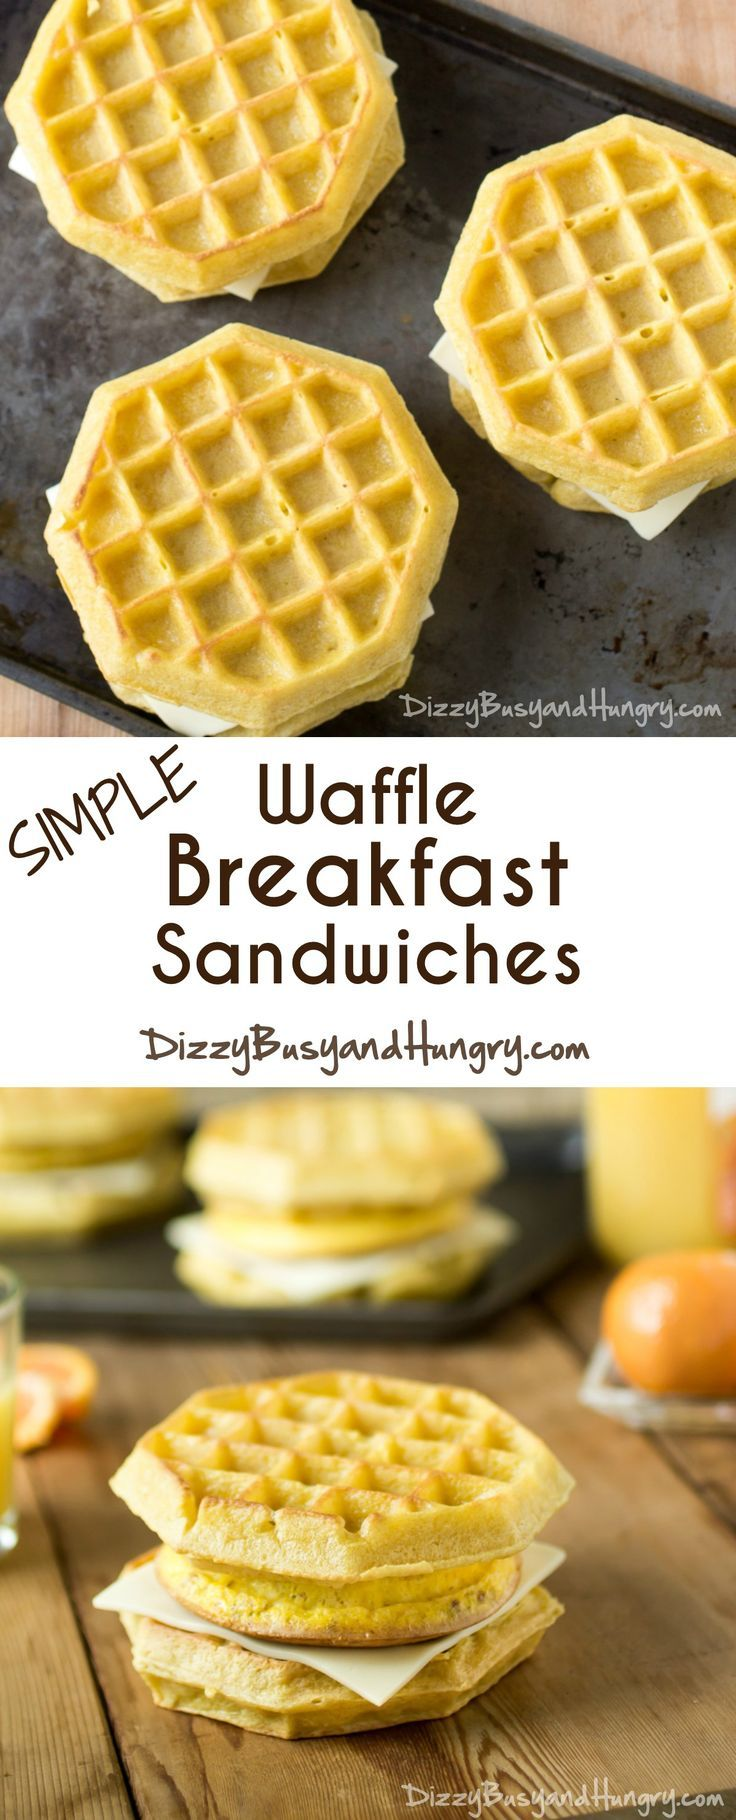 Simple Waffle Breakfast Sandwiches - Easy to assemble on busy mornings, and tastier than frozen versions! http://www.dizzybusyandhungry.com/simple-waffle-breakfast-sandwiches/